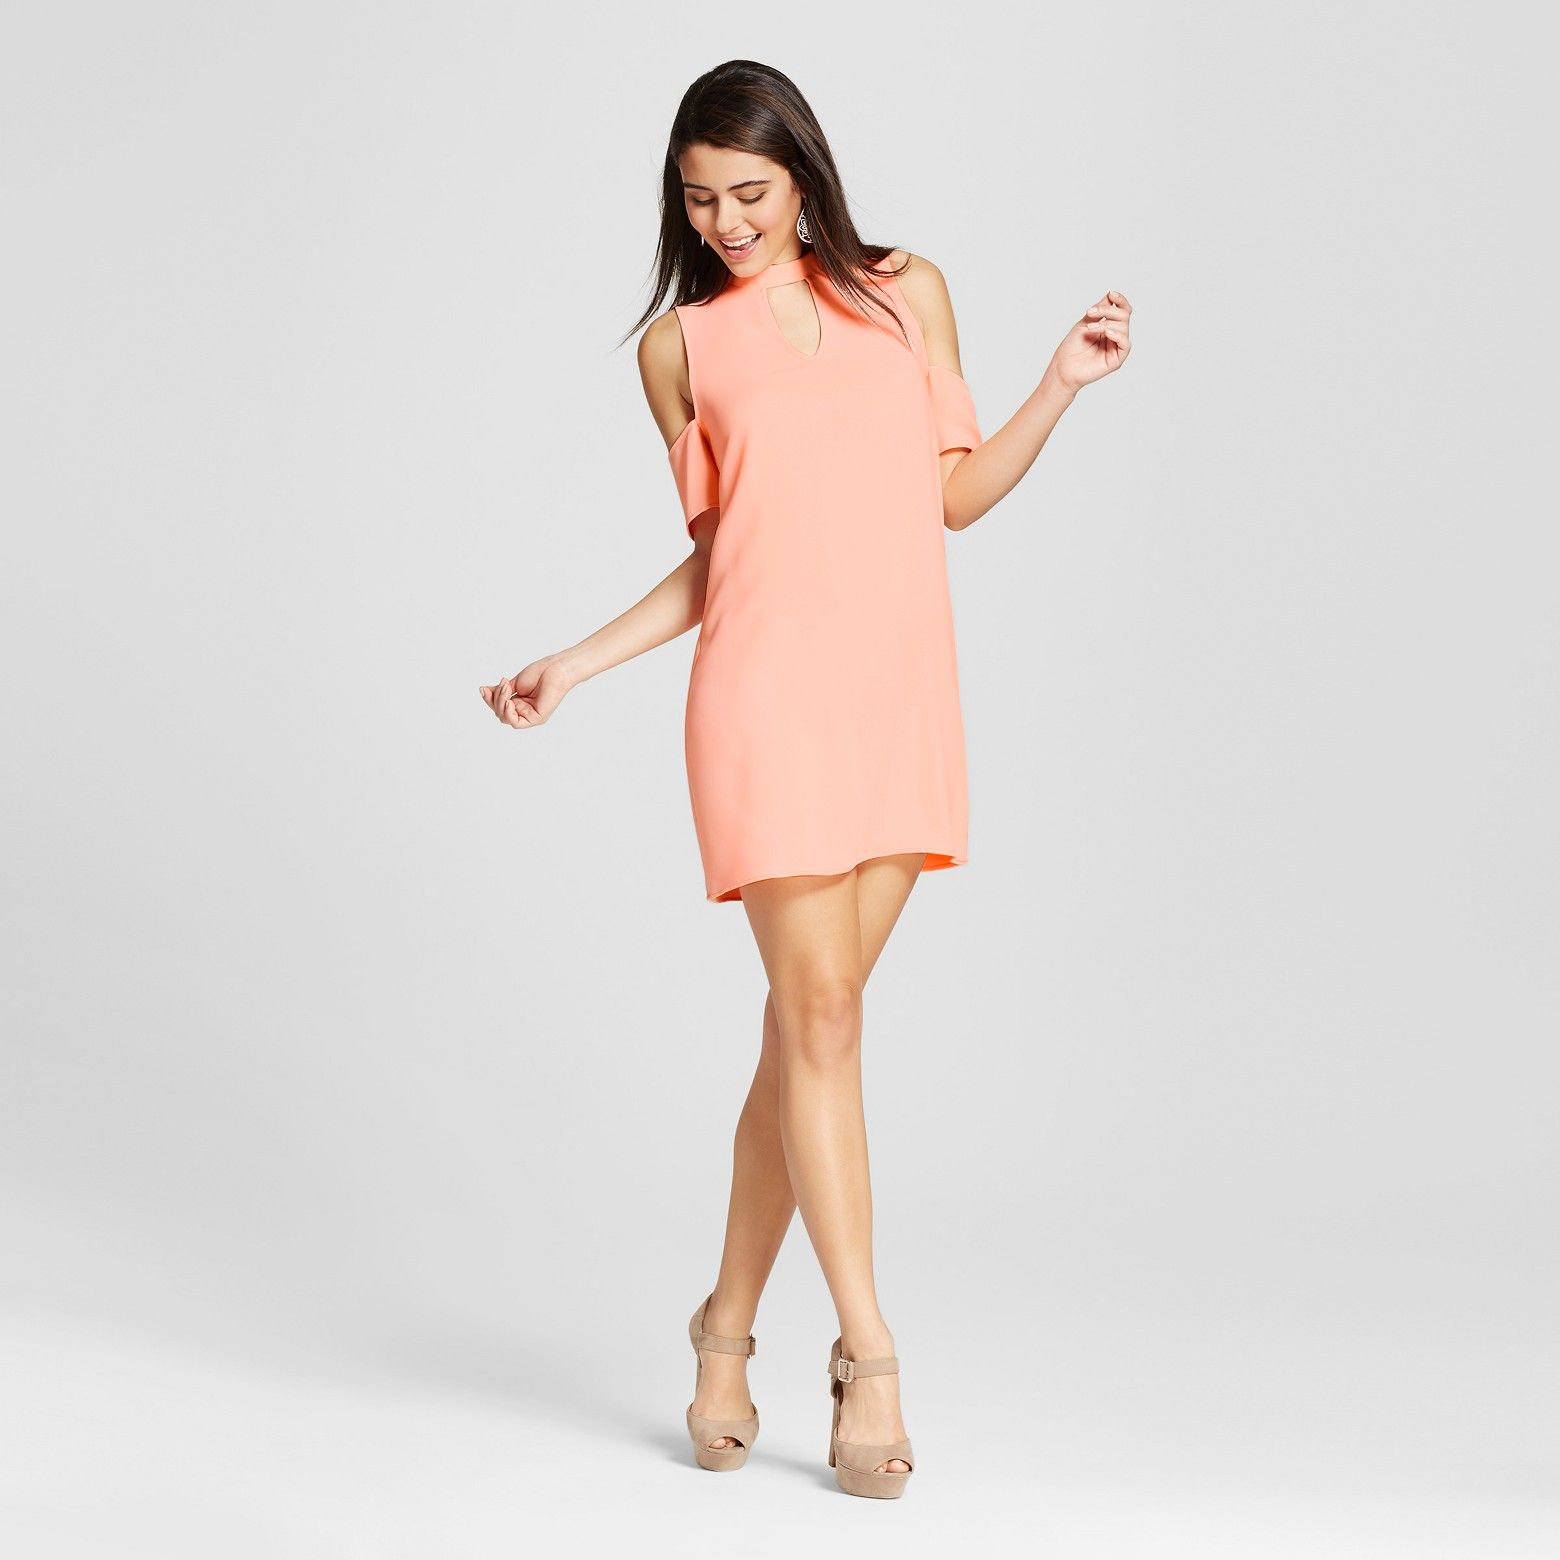 The Youthful Approach To The Women 39 S High Neck Keyhole Cold Shoulder Dress By Le Kate Juniors 39 Gives It Plucky Cold Shoulder Dress Dresses Mini Dress [ 1560 x 1560 Pixel ]